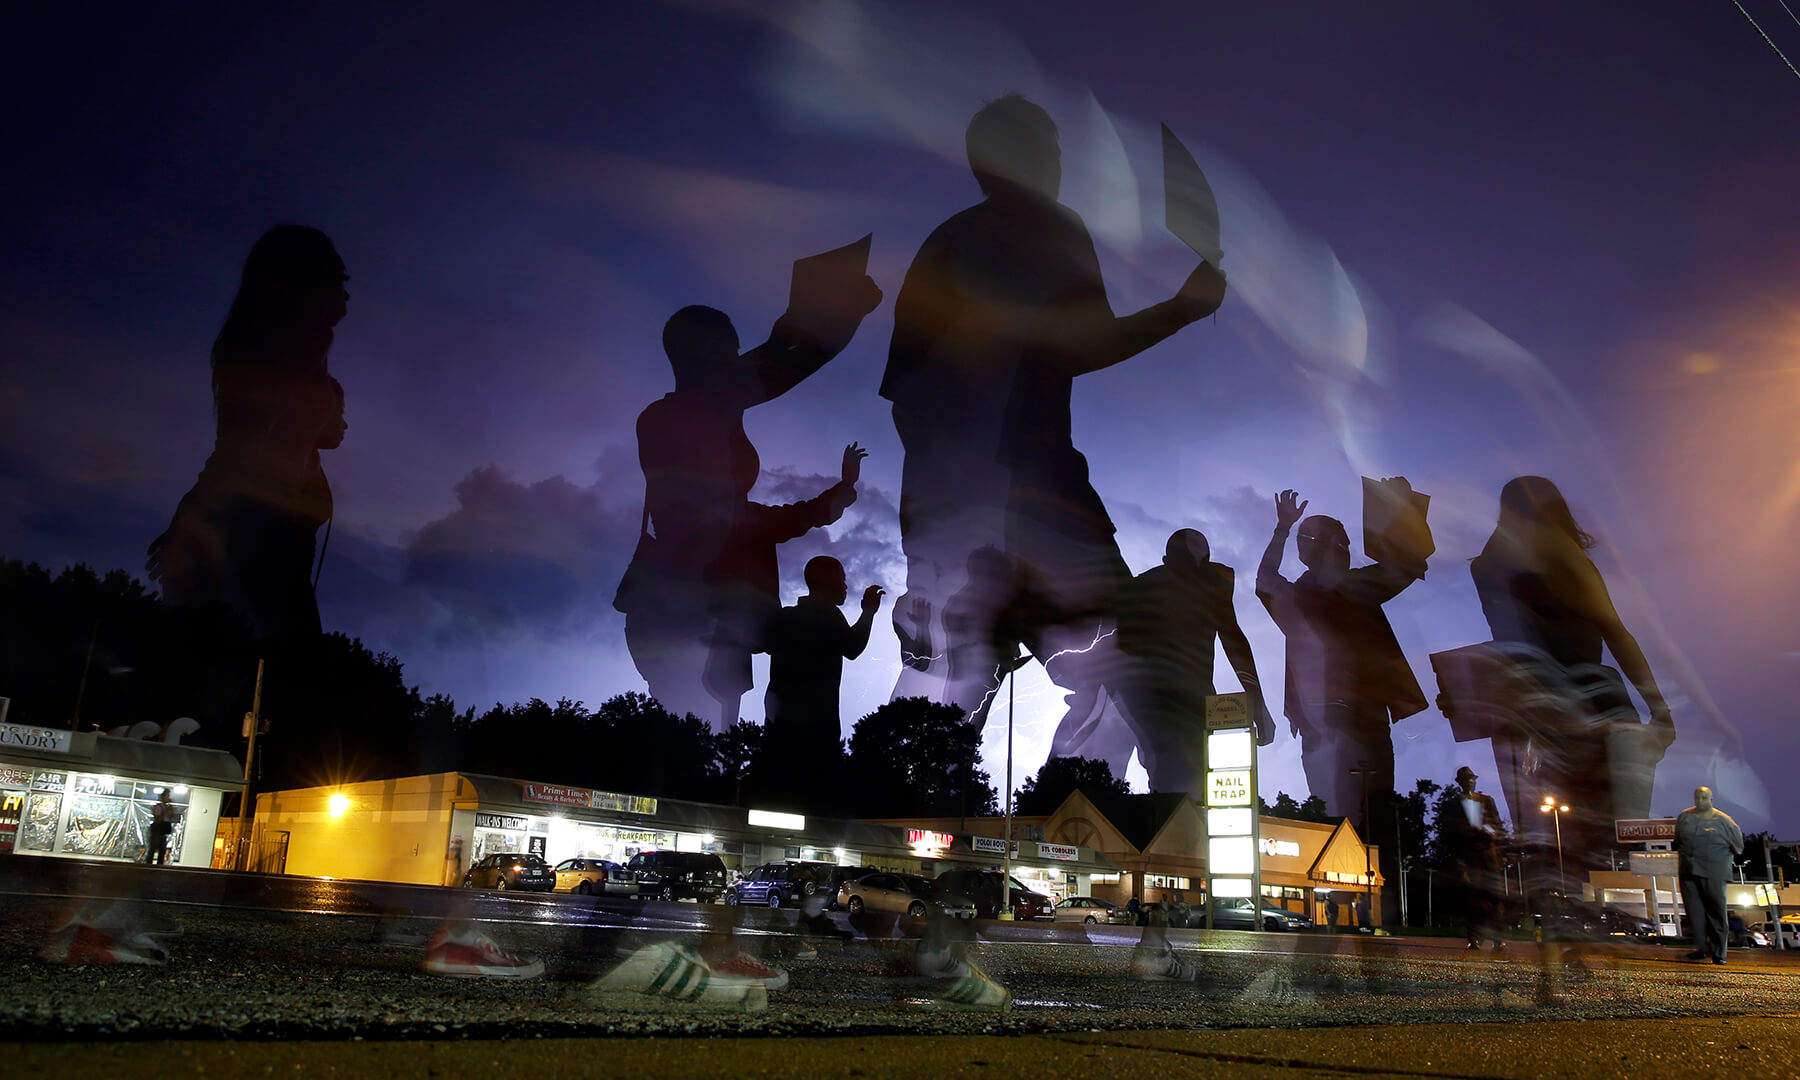 protesters march in Ferguson, MO after Michael Brown was fatally shot